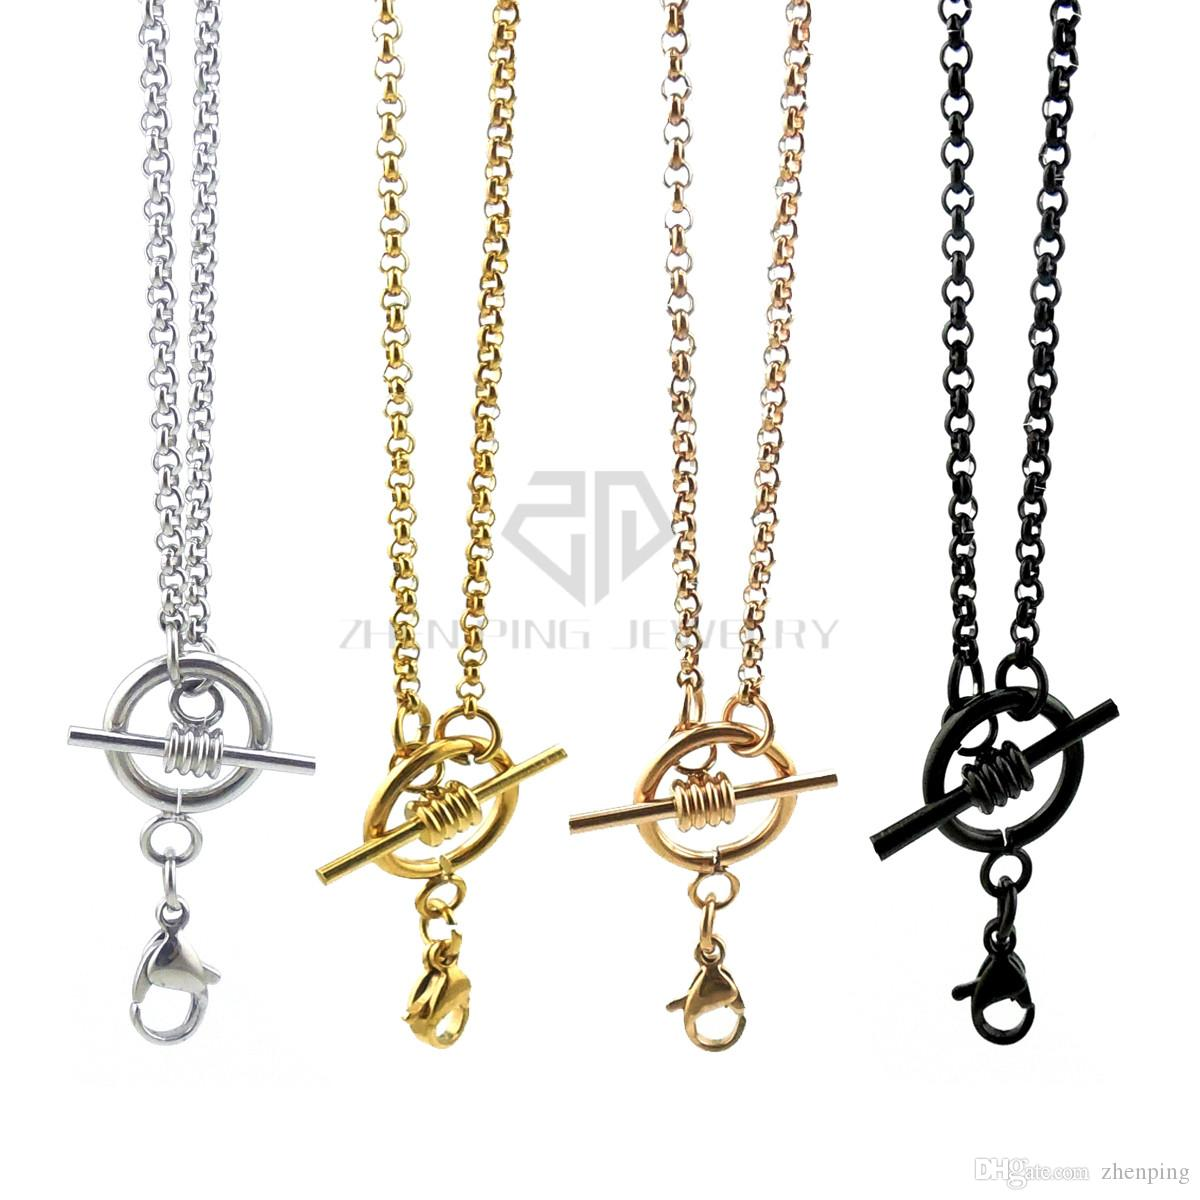 Free shipping silver new design rolo chain with toggle and lobster clasp 14-24 inch can be choose stainless steel rolo chain